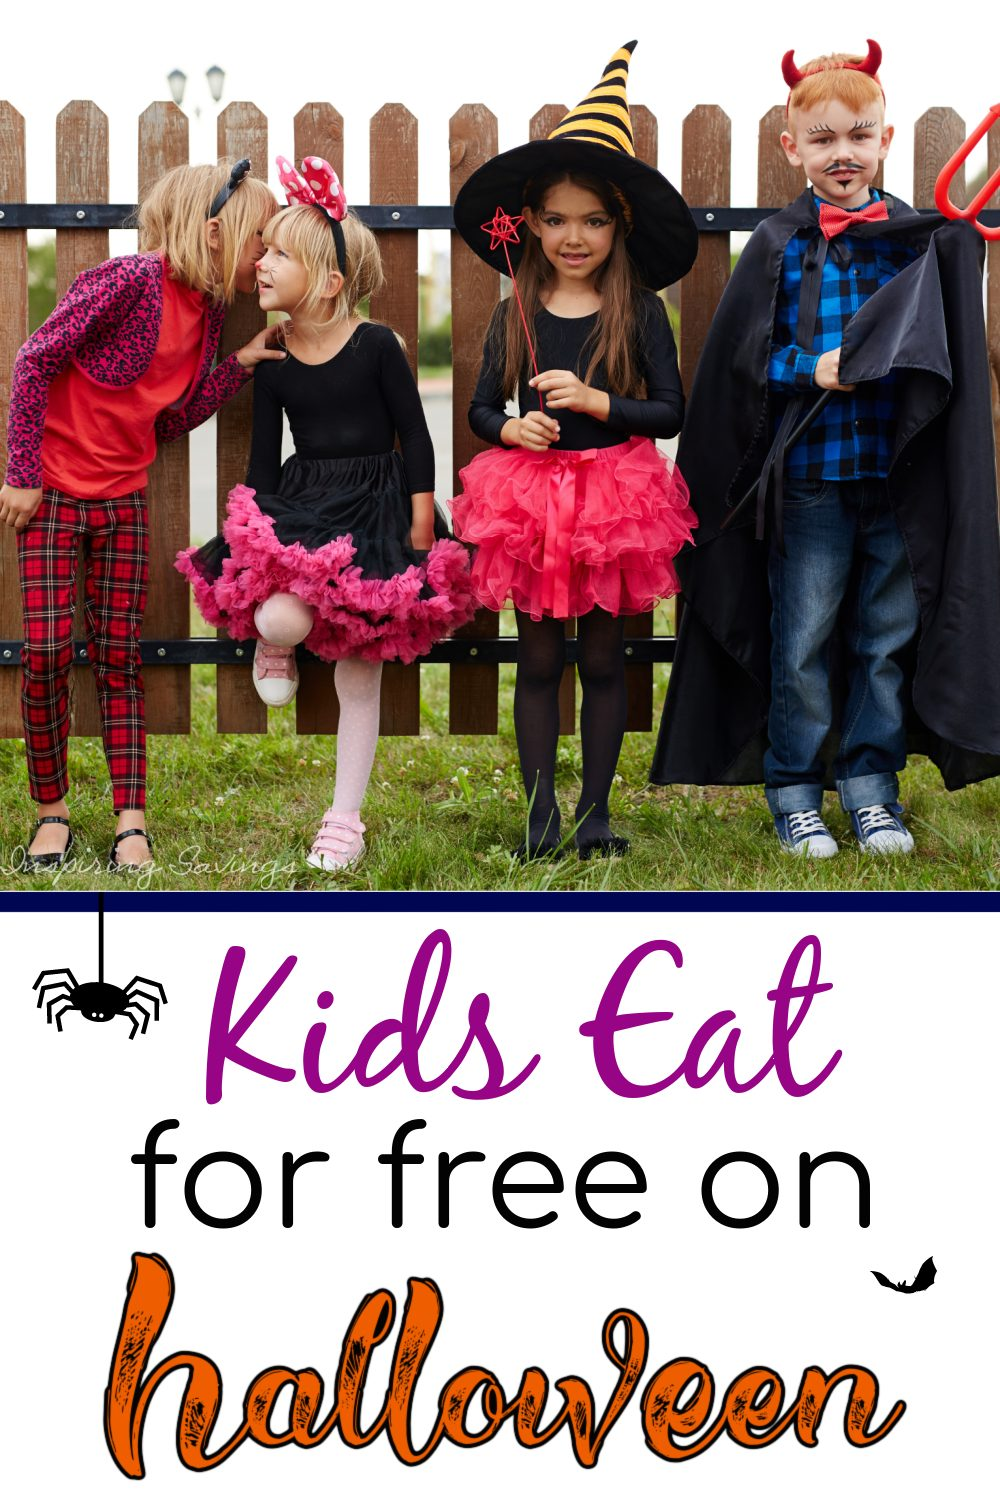 Kids dressed up for Halloween. Kids eat for free on Halloween